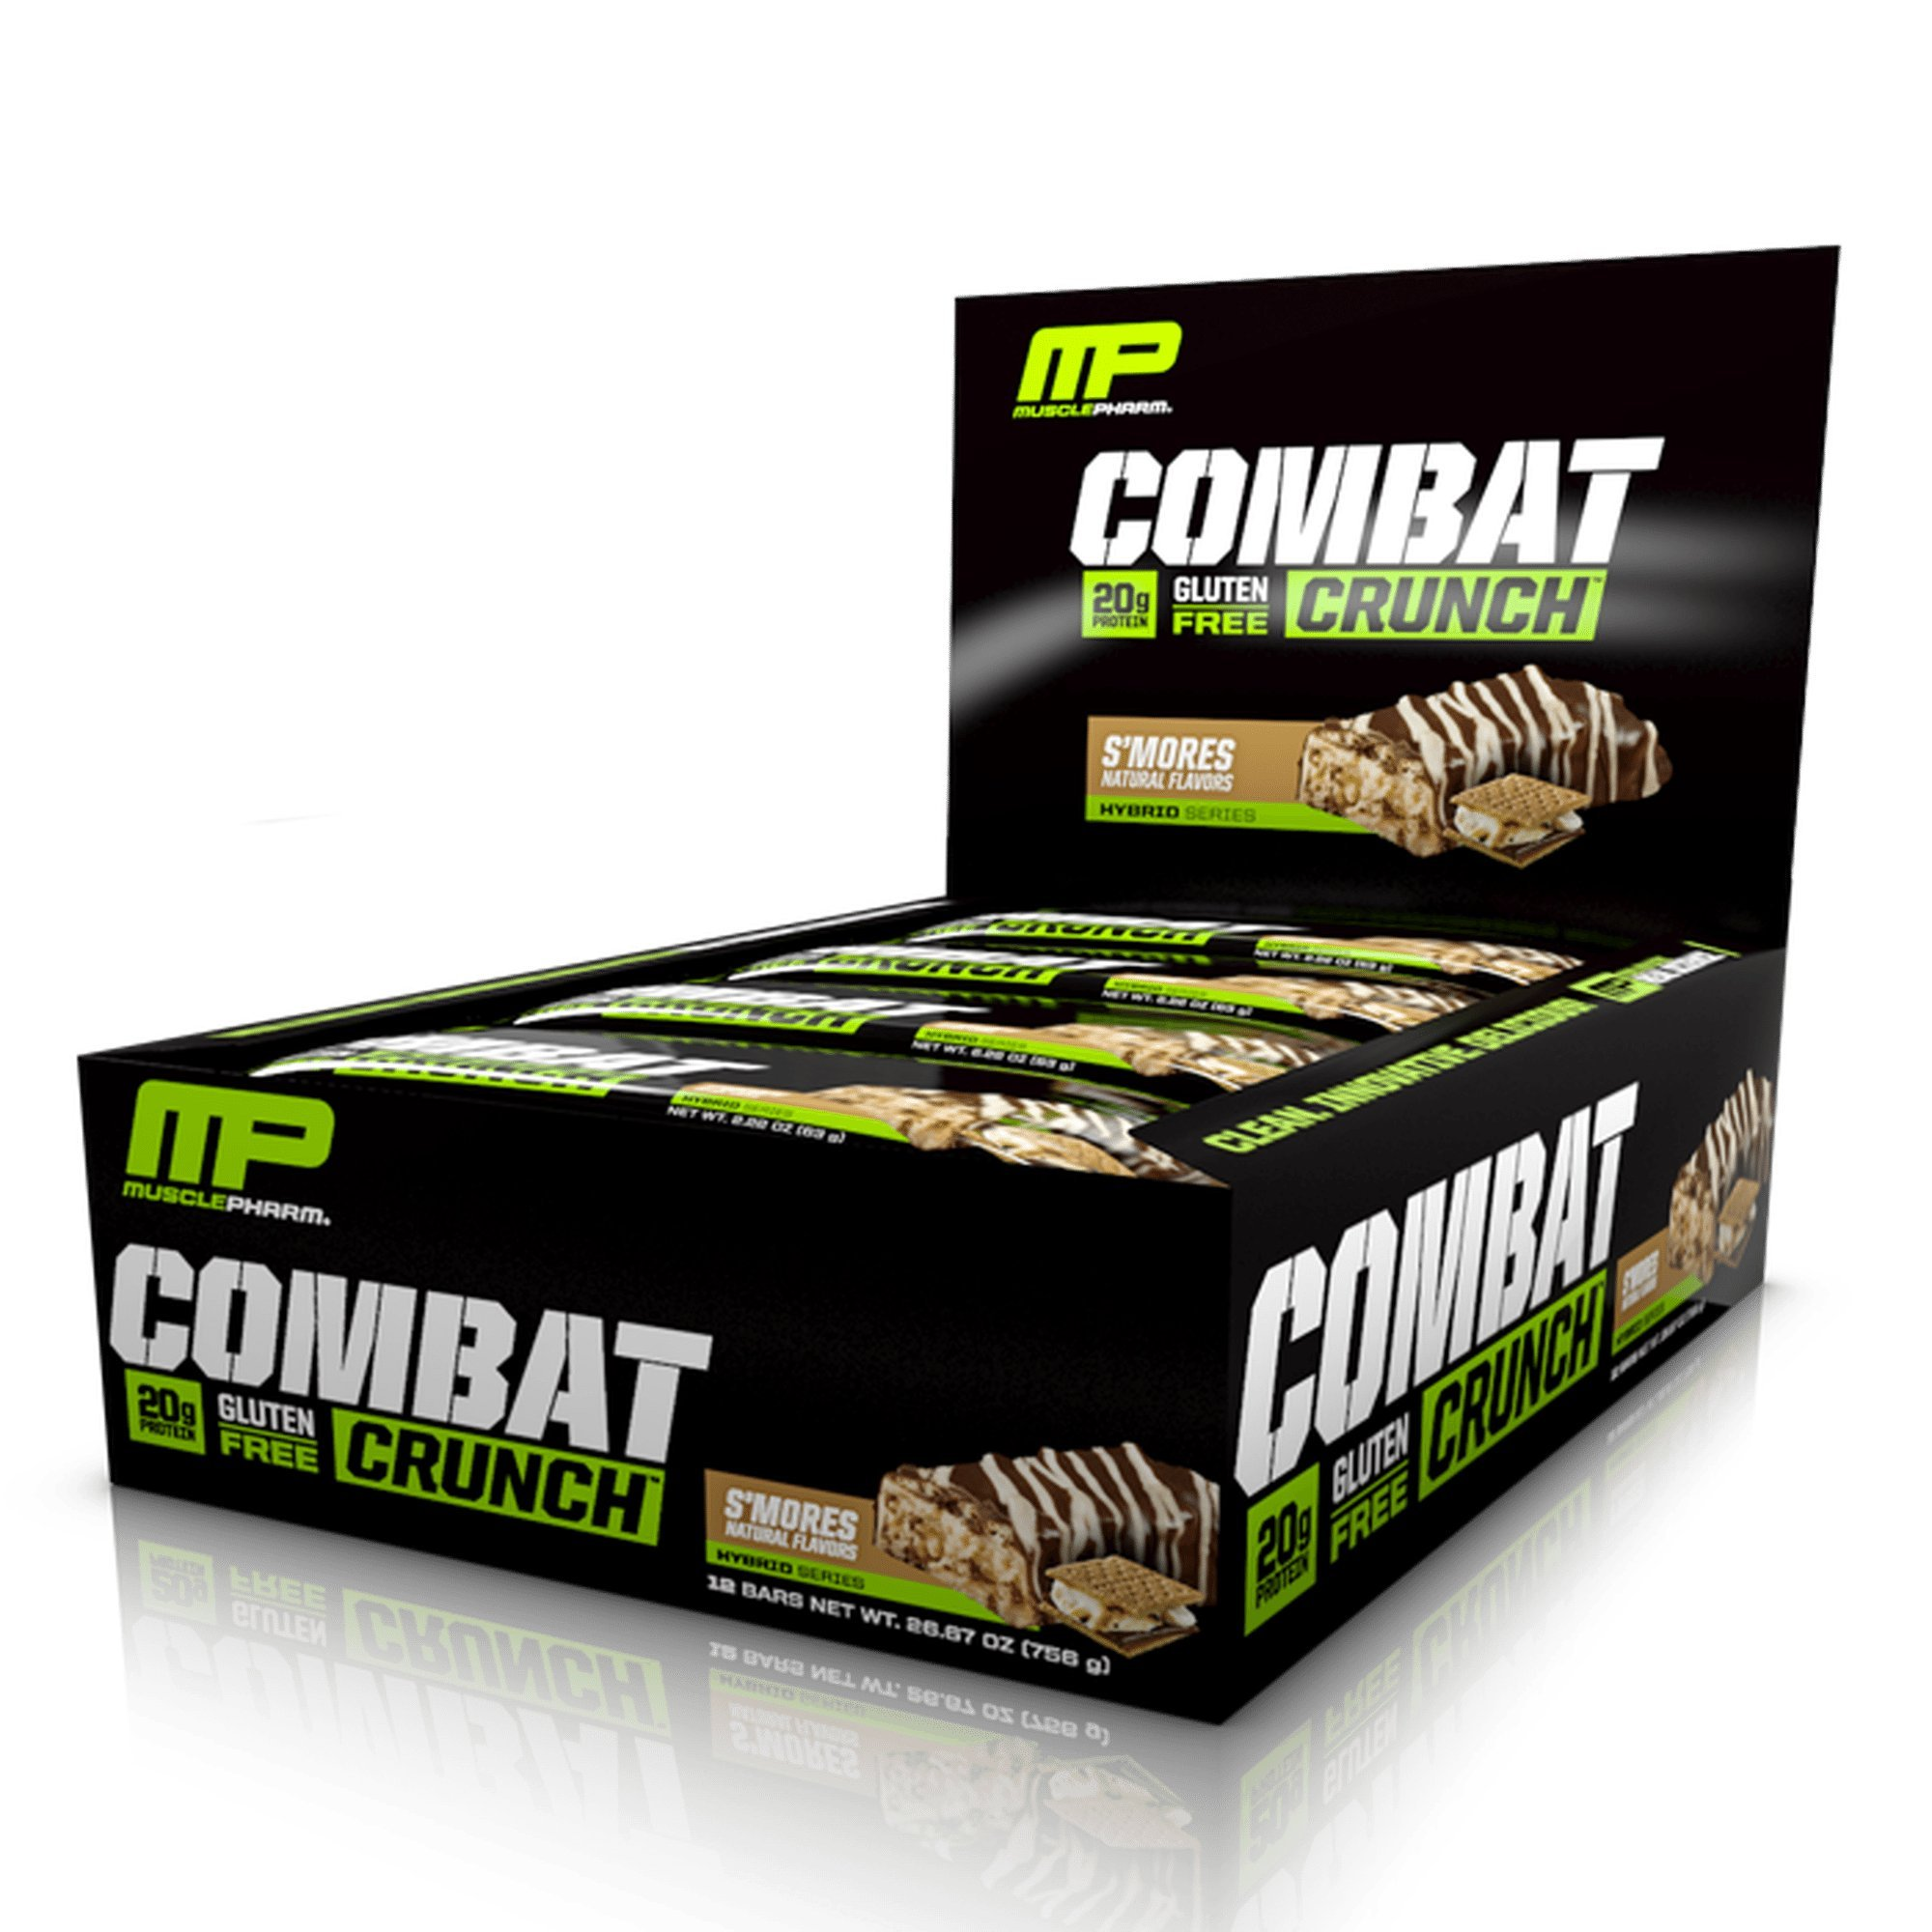 MusclePharm Combat Crunch Protein Bar, Multi-Layered Baked Bar, Gluten-Free Bars, 20 g Protein, Low-Sugar, Low-Carb, Gluten-Free, S'mores Bars, 12 Count by Muscle Pharm